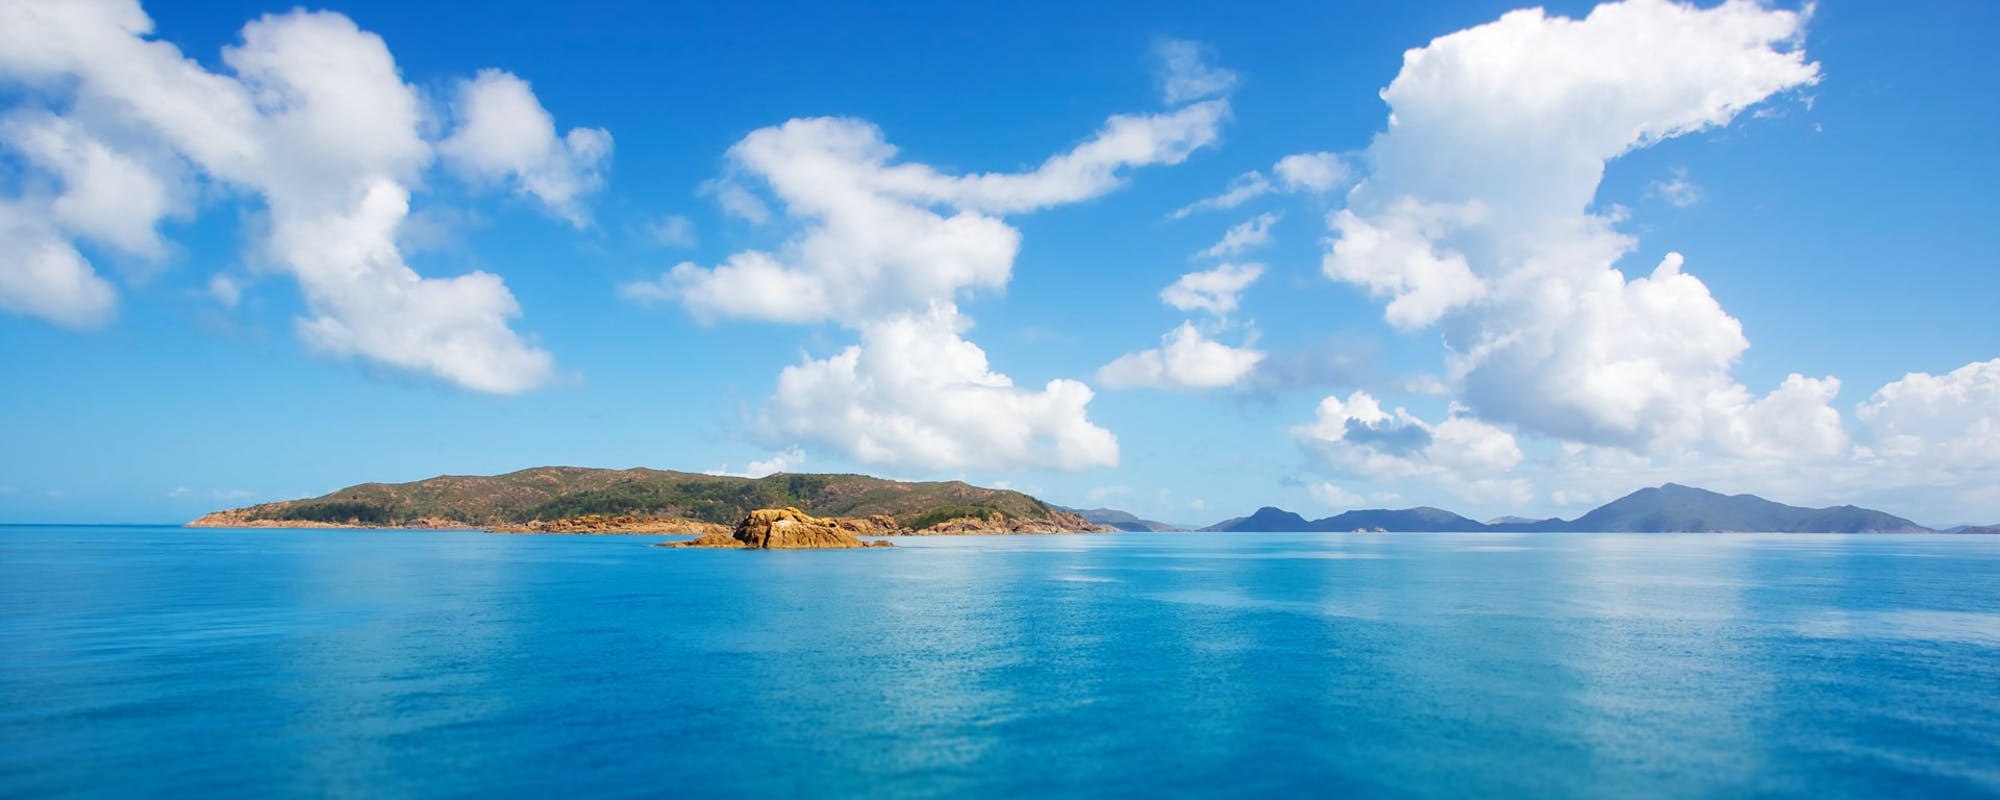 reasons why you should visit the whitsundays pictures